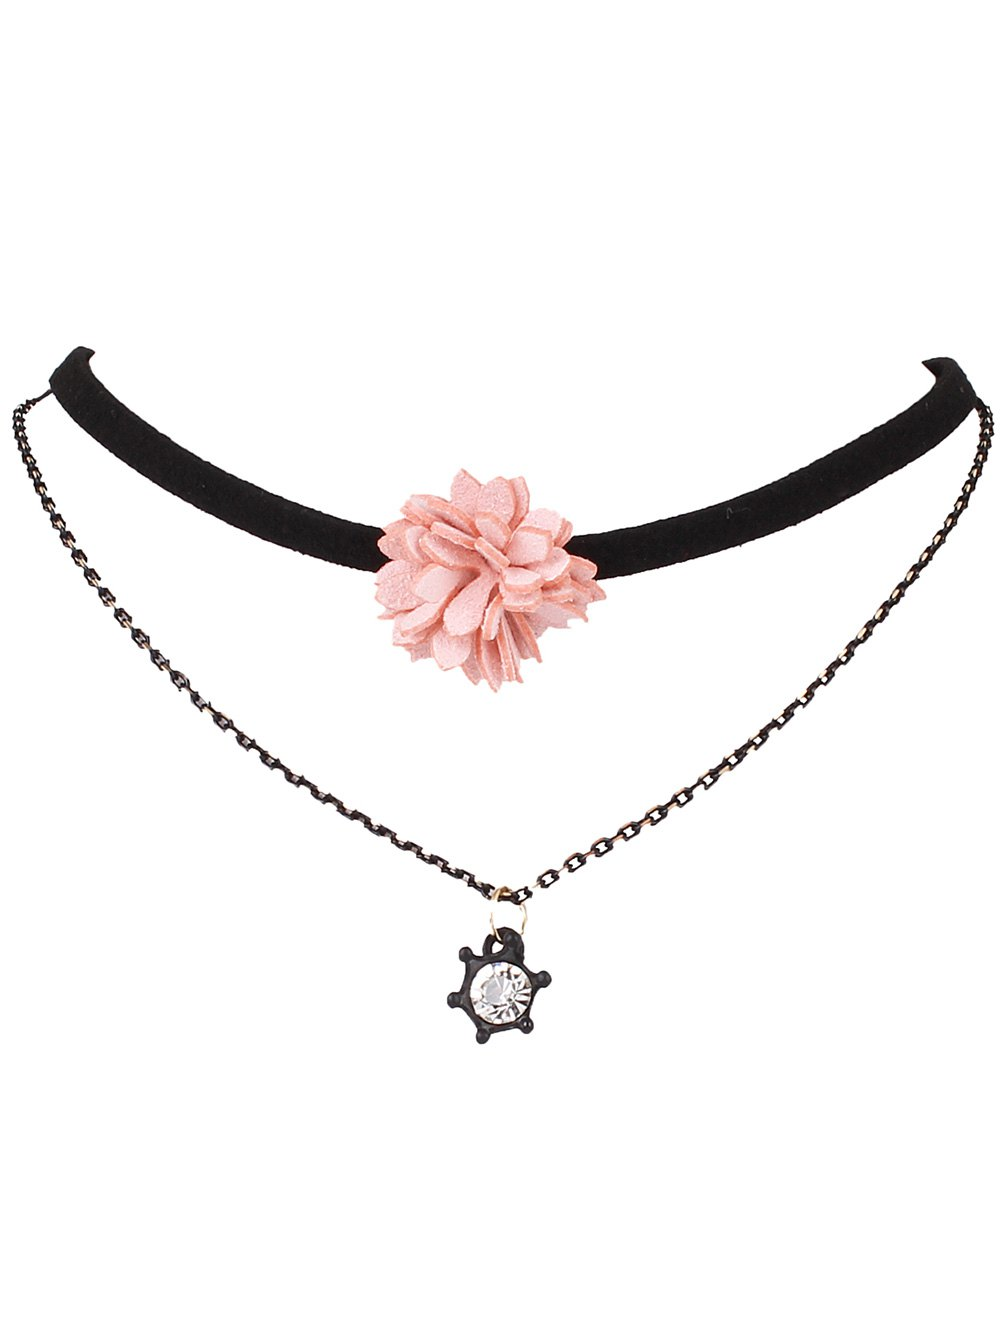 Rhinestone Flower Faux Leather Layered Choker Necklace